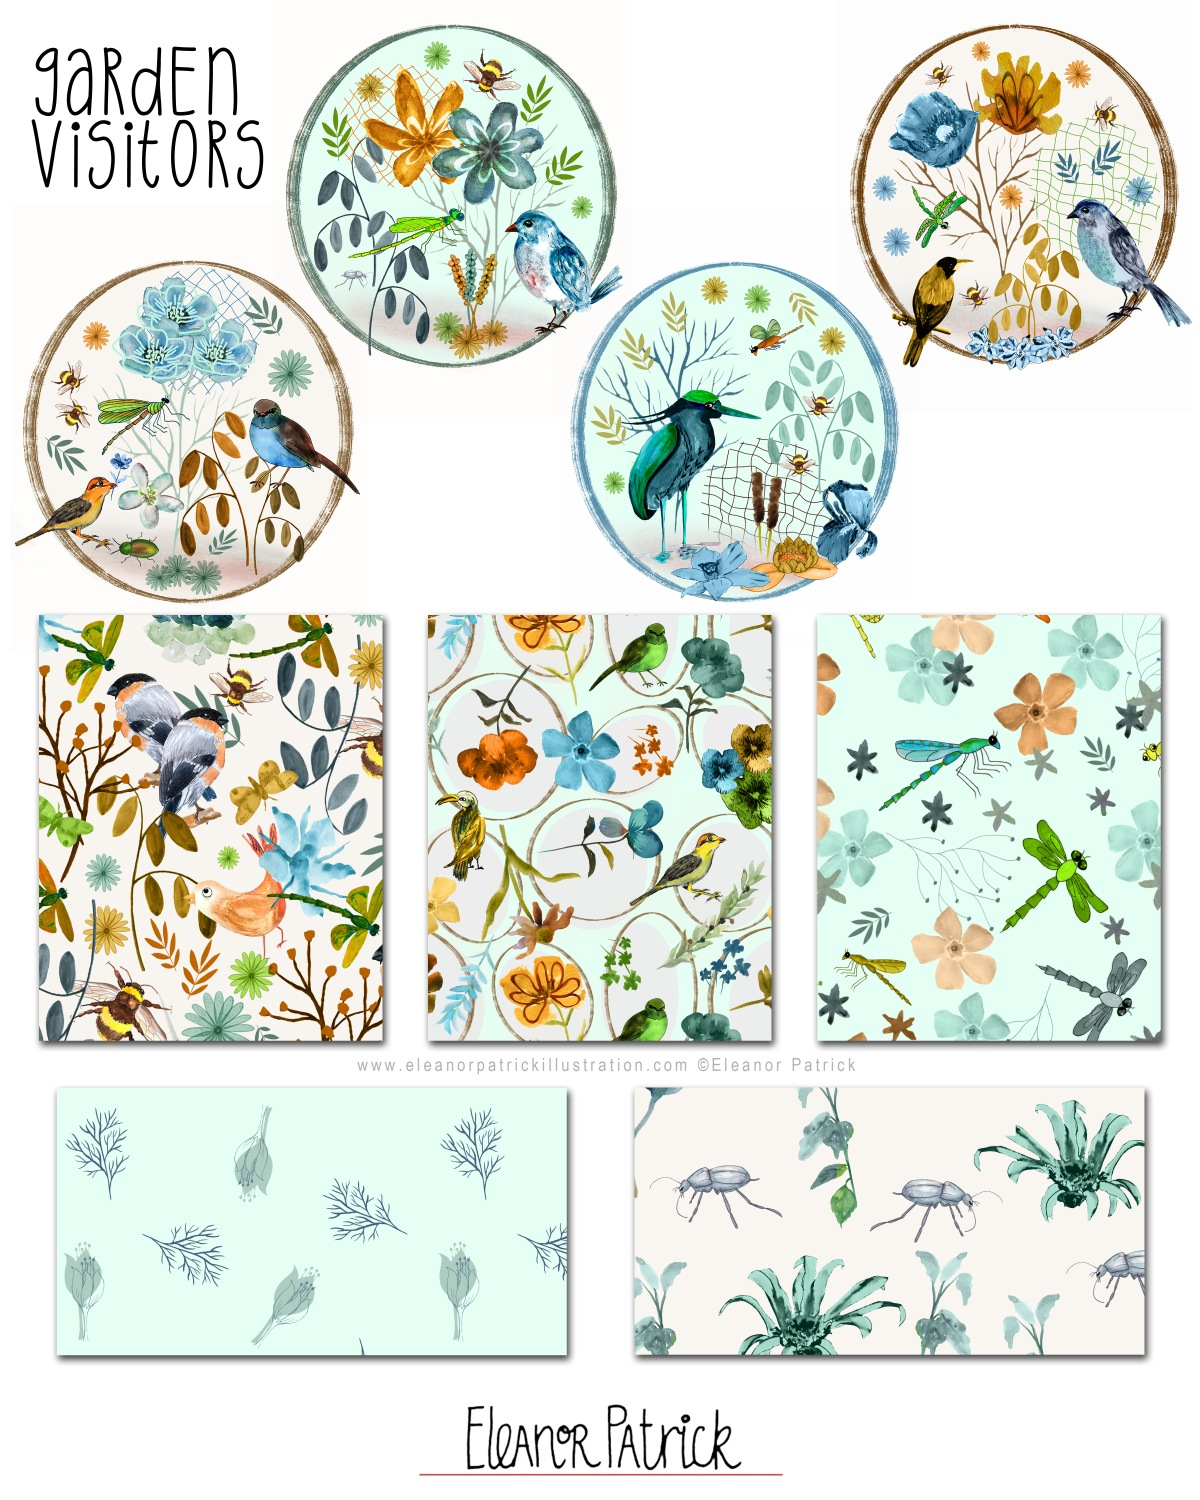 Garden vistors collection